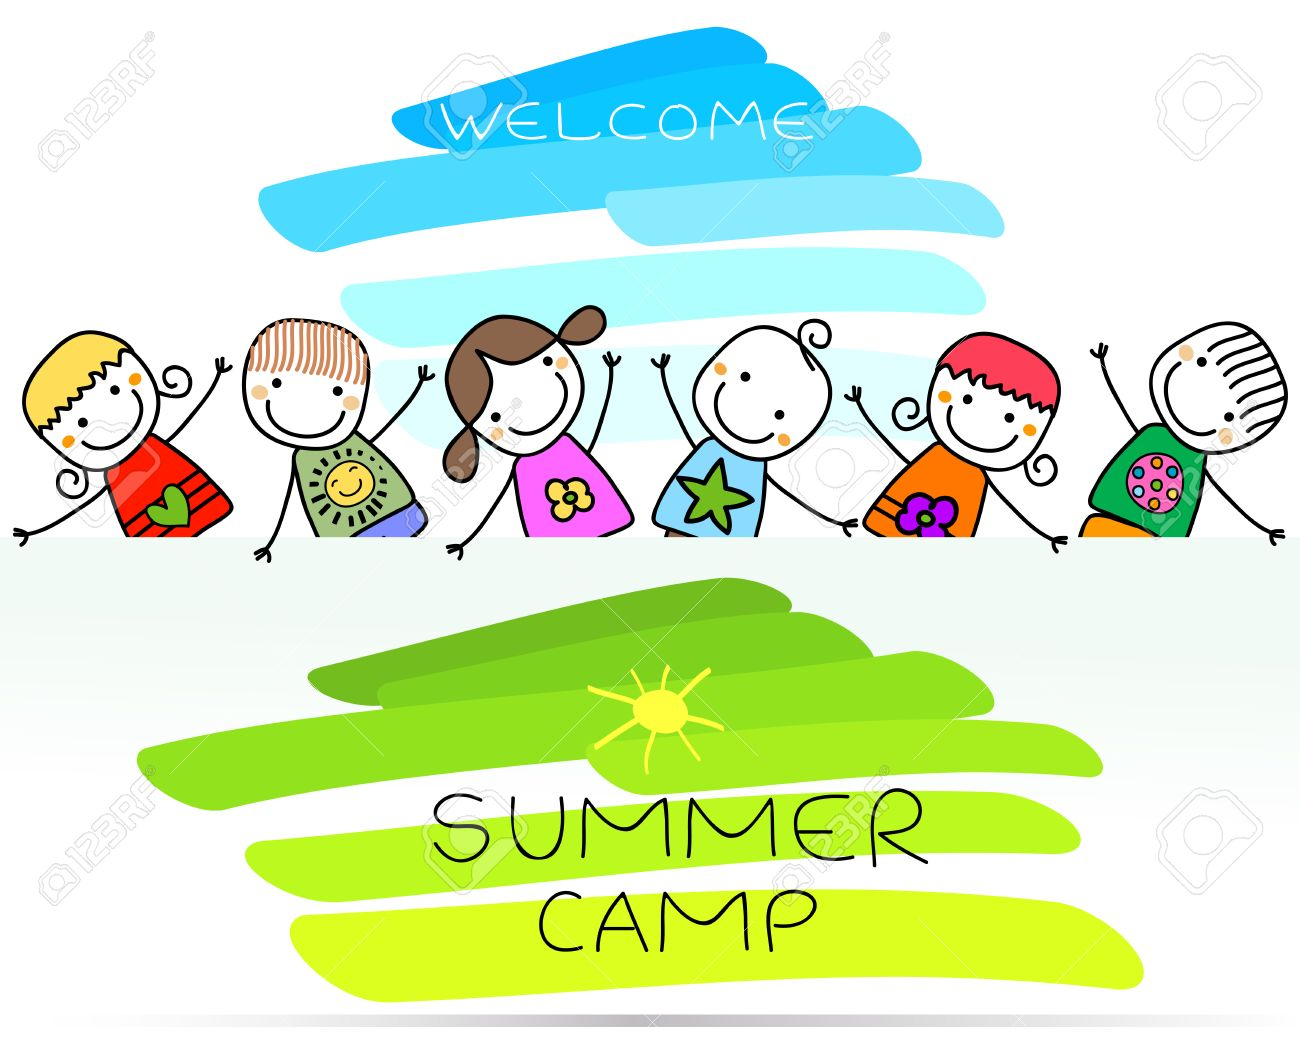 Summer Camp Stock Photos. Royalty Free Summer Camp Images